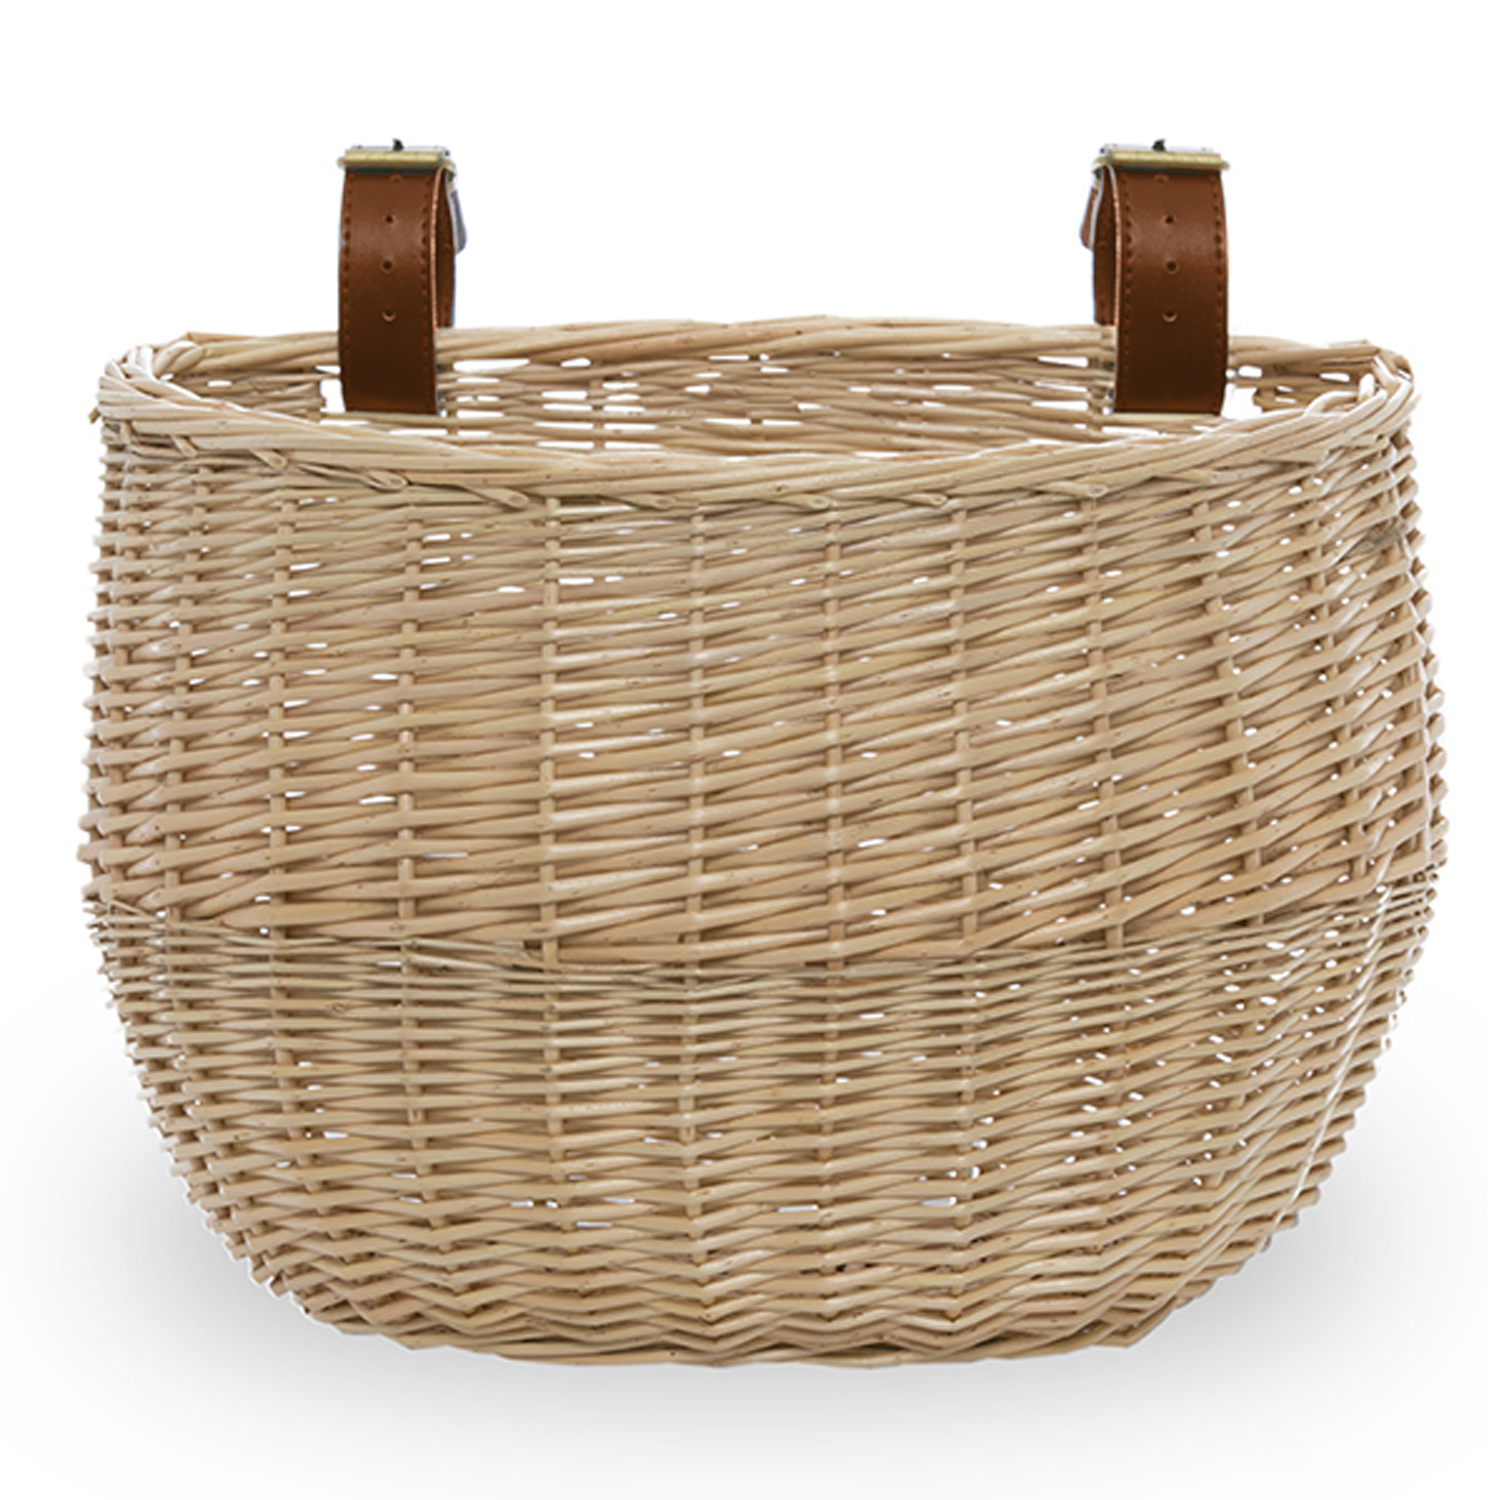 Willow Bicycle Basket with Faux Leather Buckles - 11in